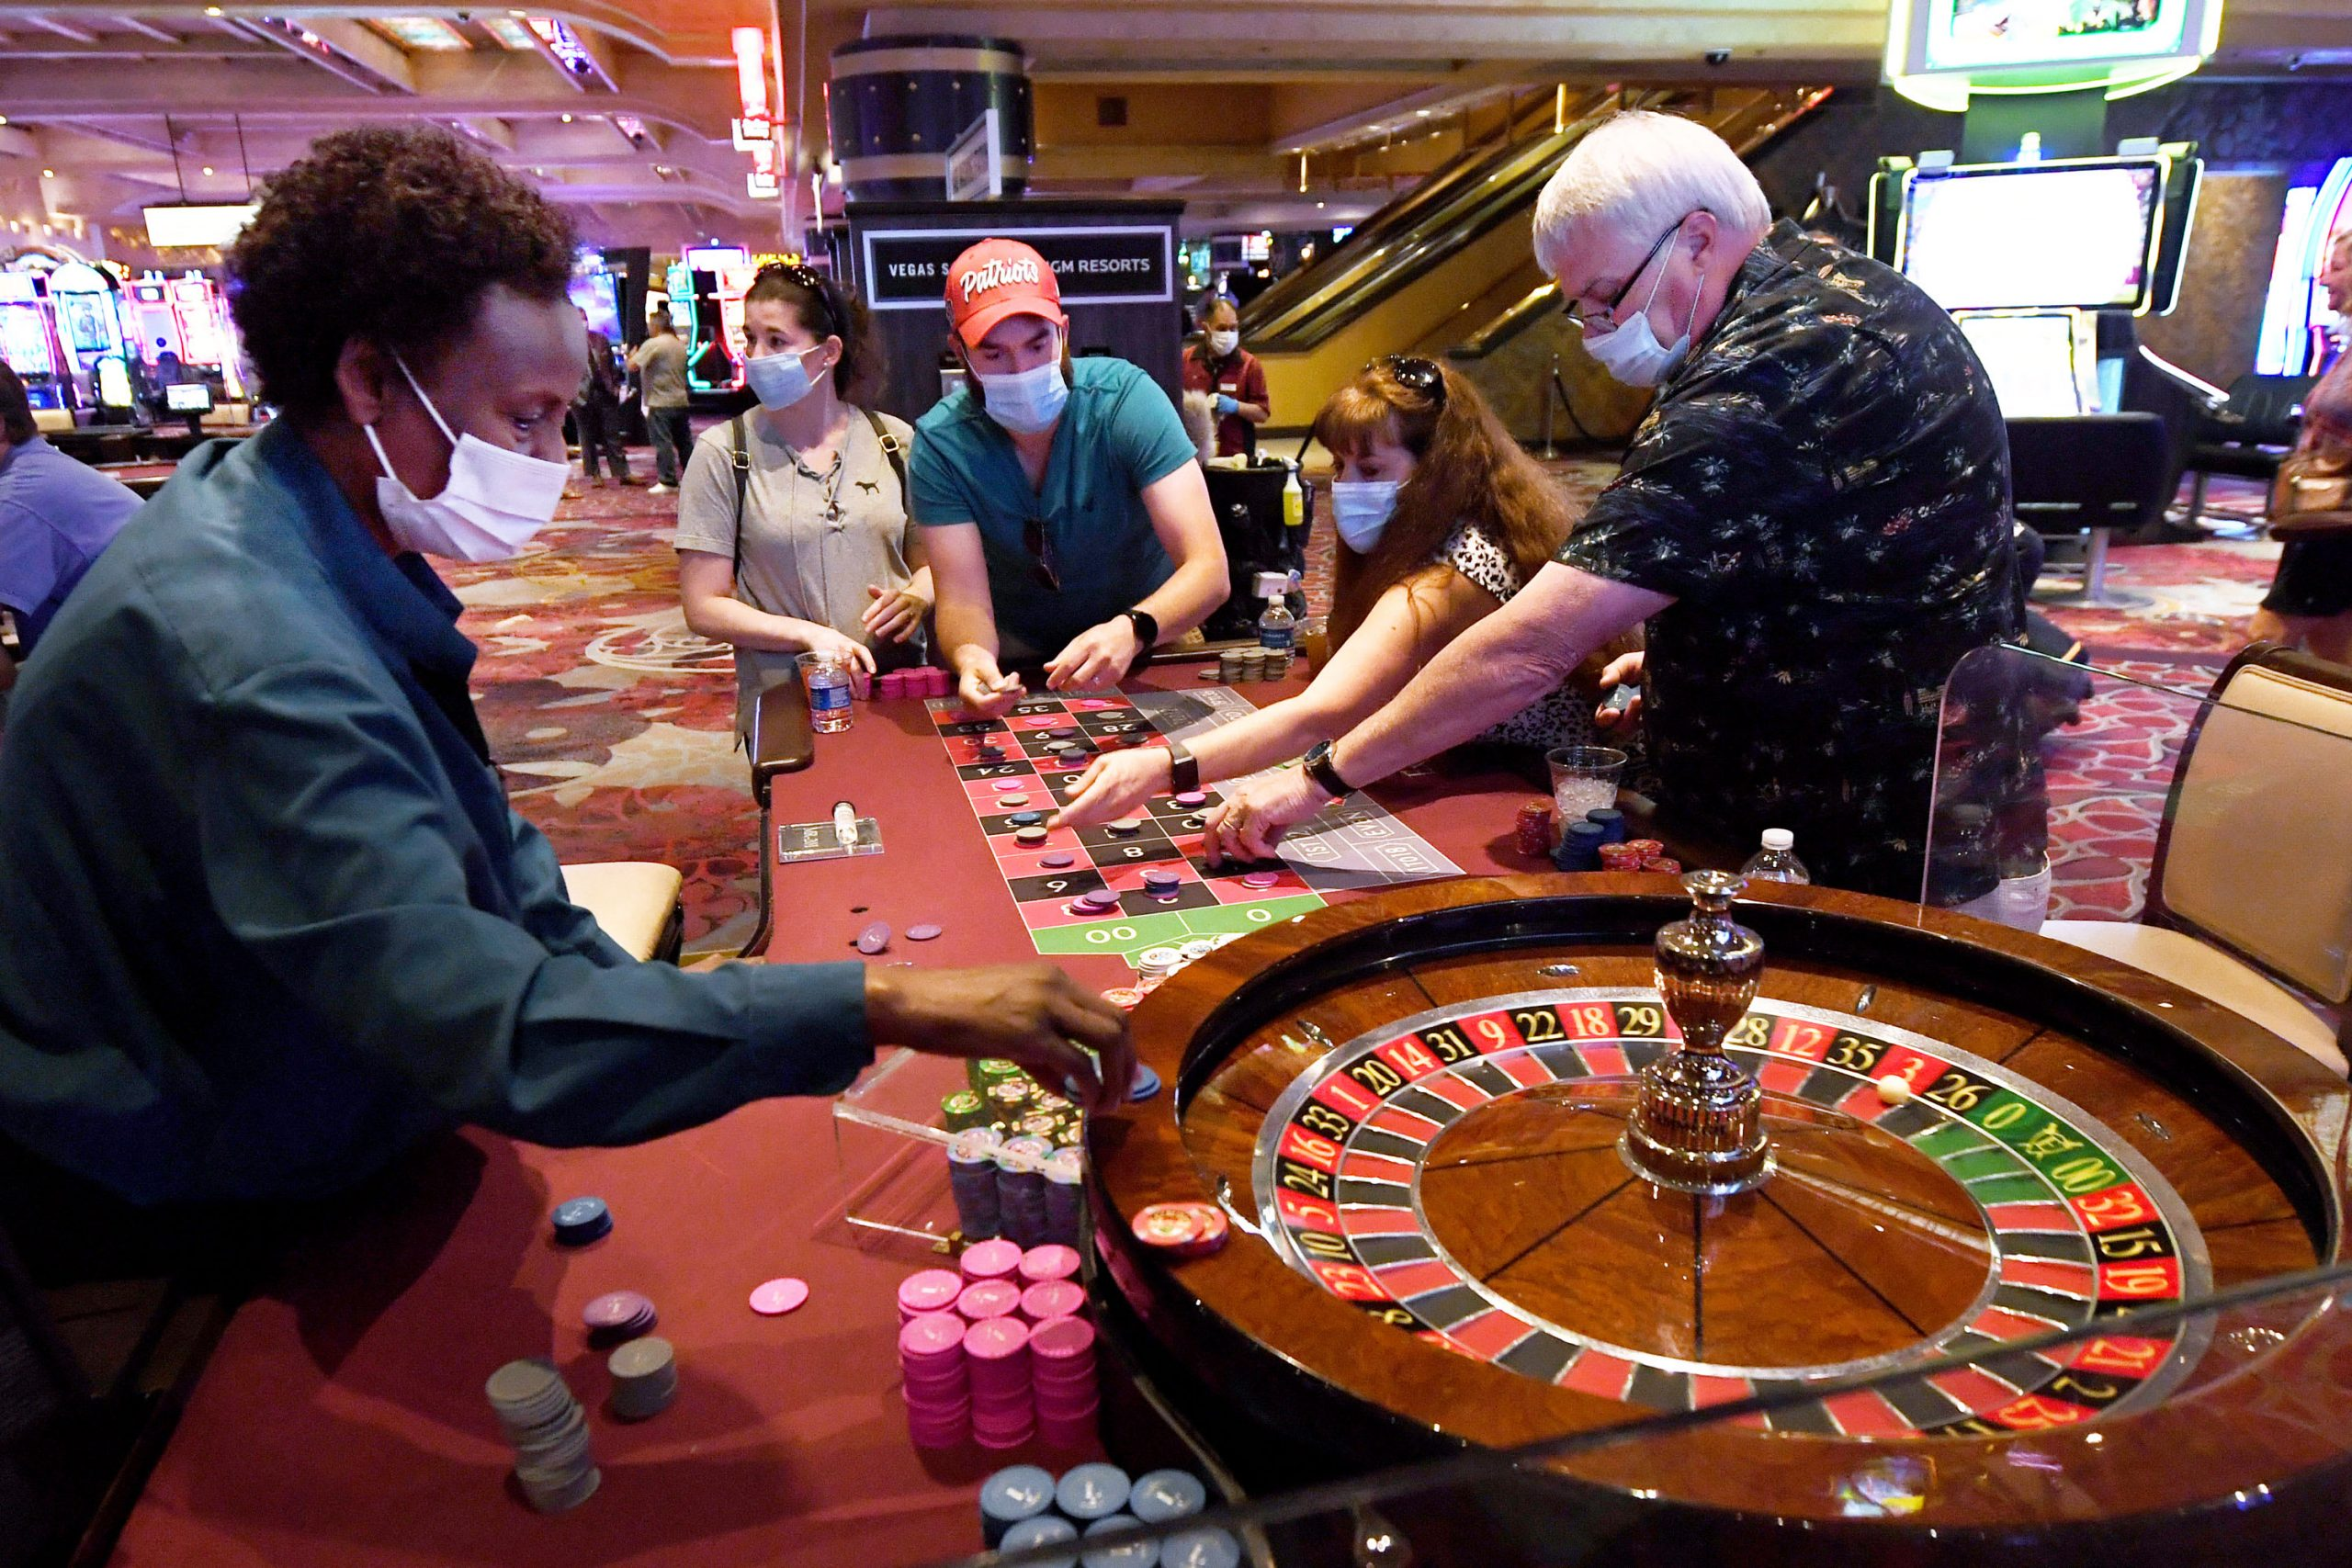 By No Ways Withstand From Casino Once Again